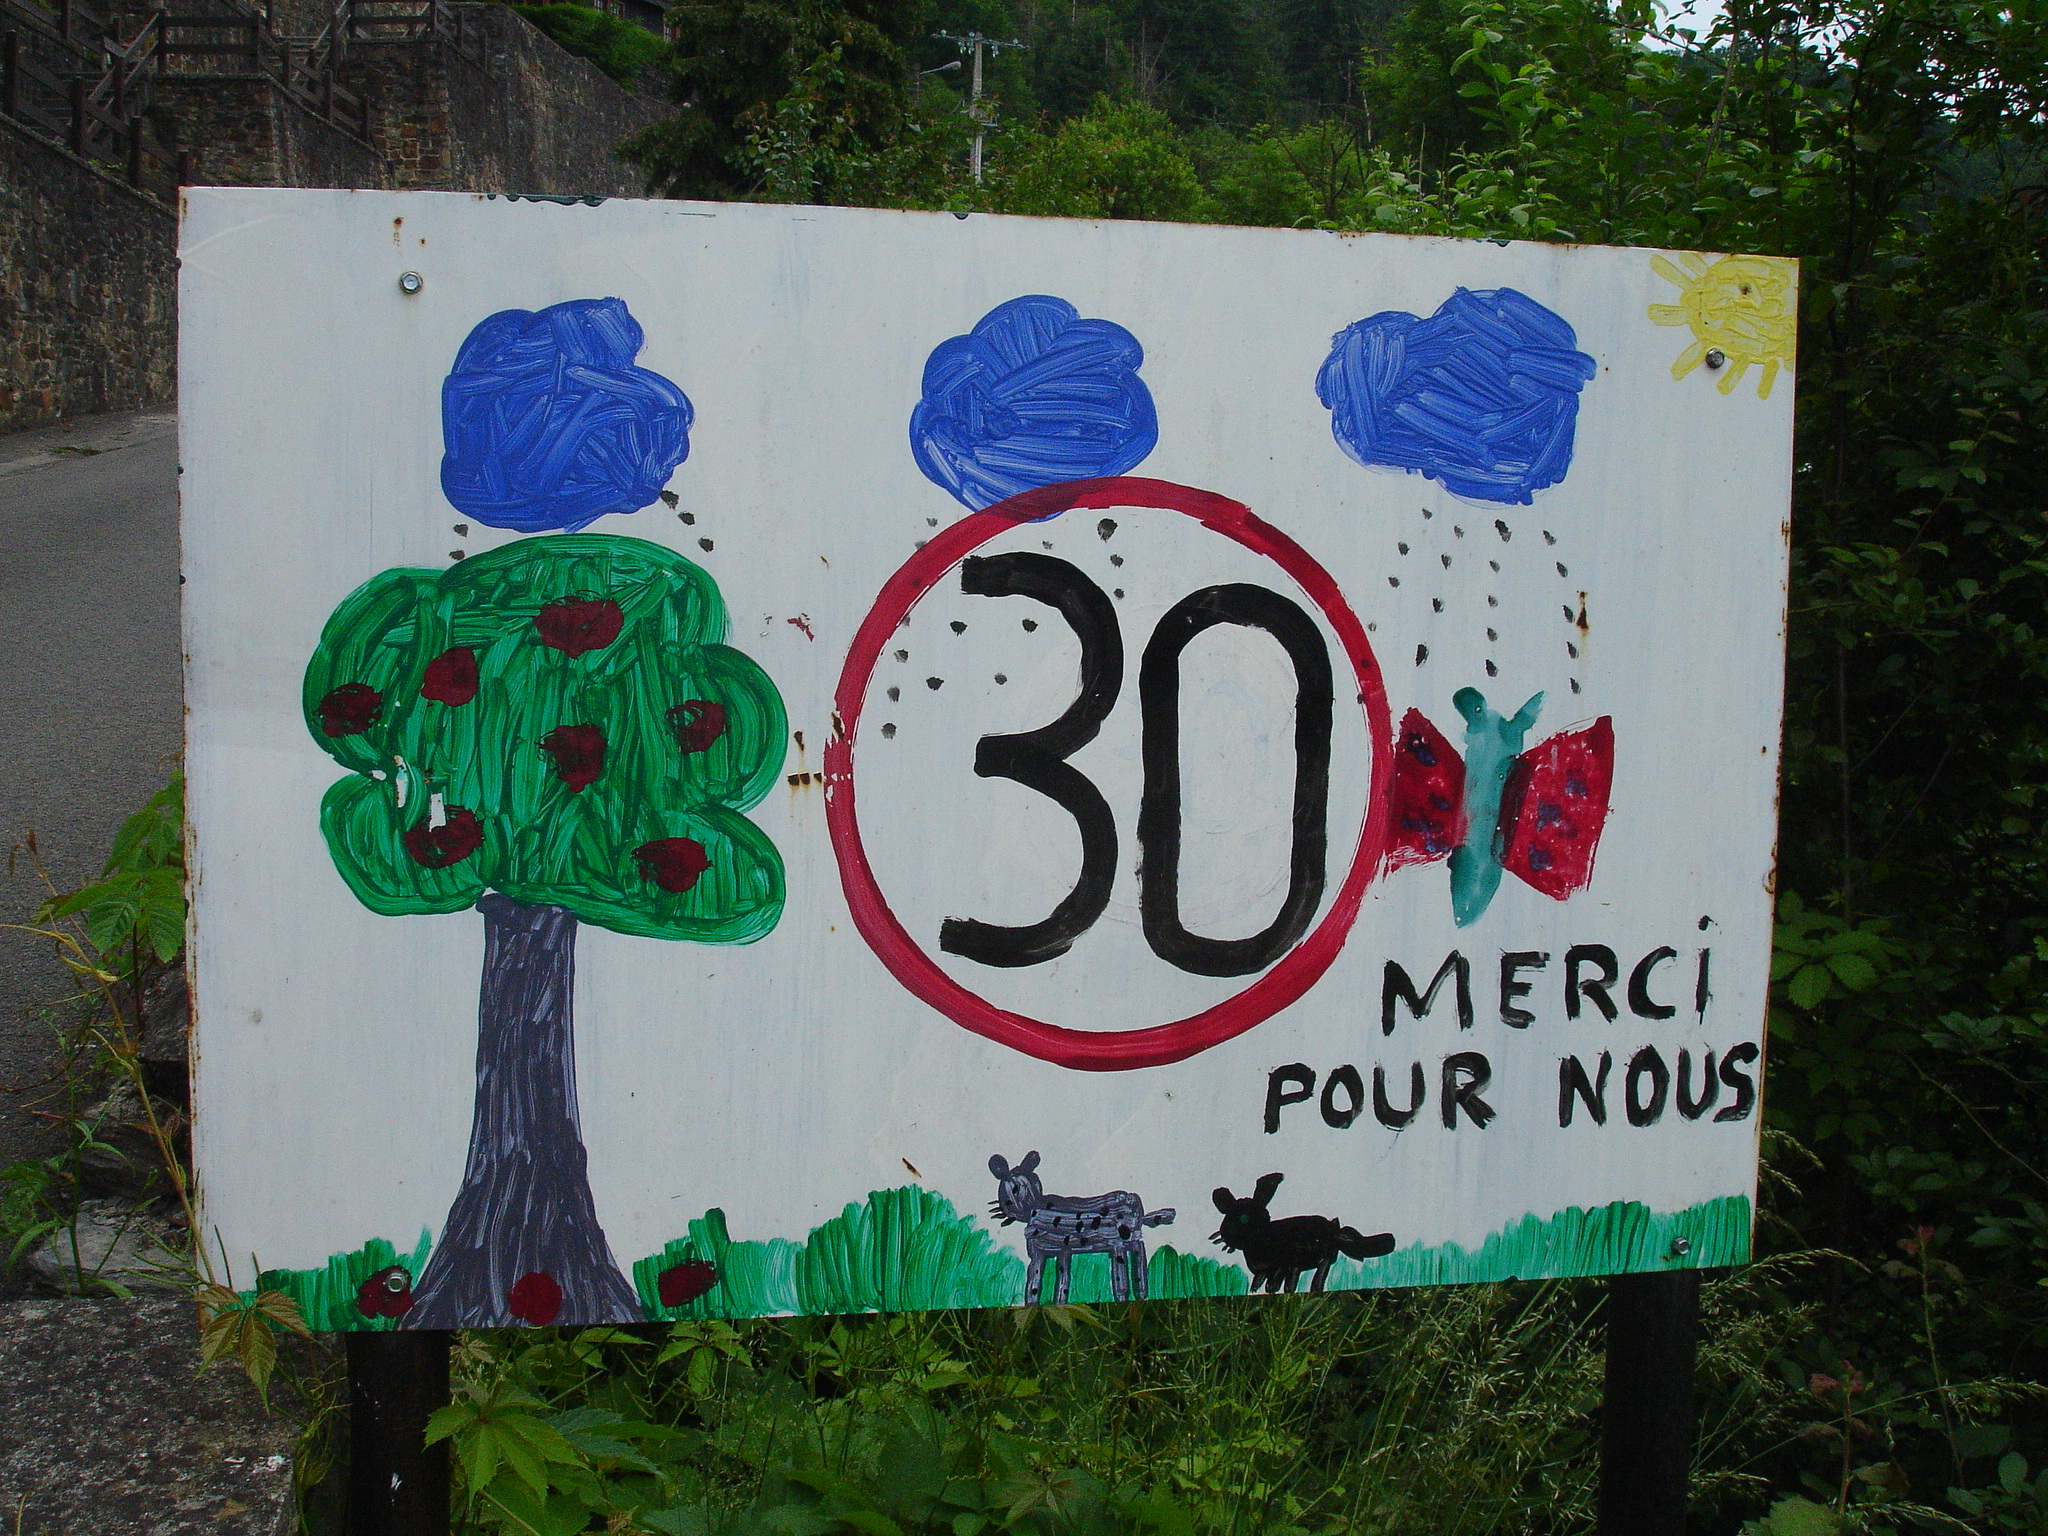 30km/hour Thanks. It\'s for us.